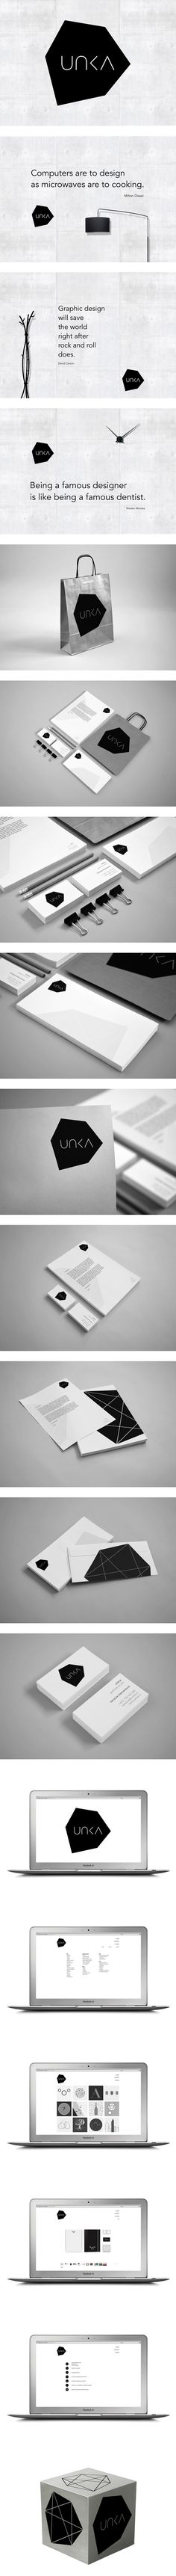 """UNKA by Ven Klement, via Behance. """"Graphic design will save the world right after rock and roll does."""""""